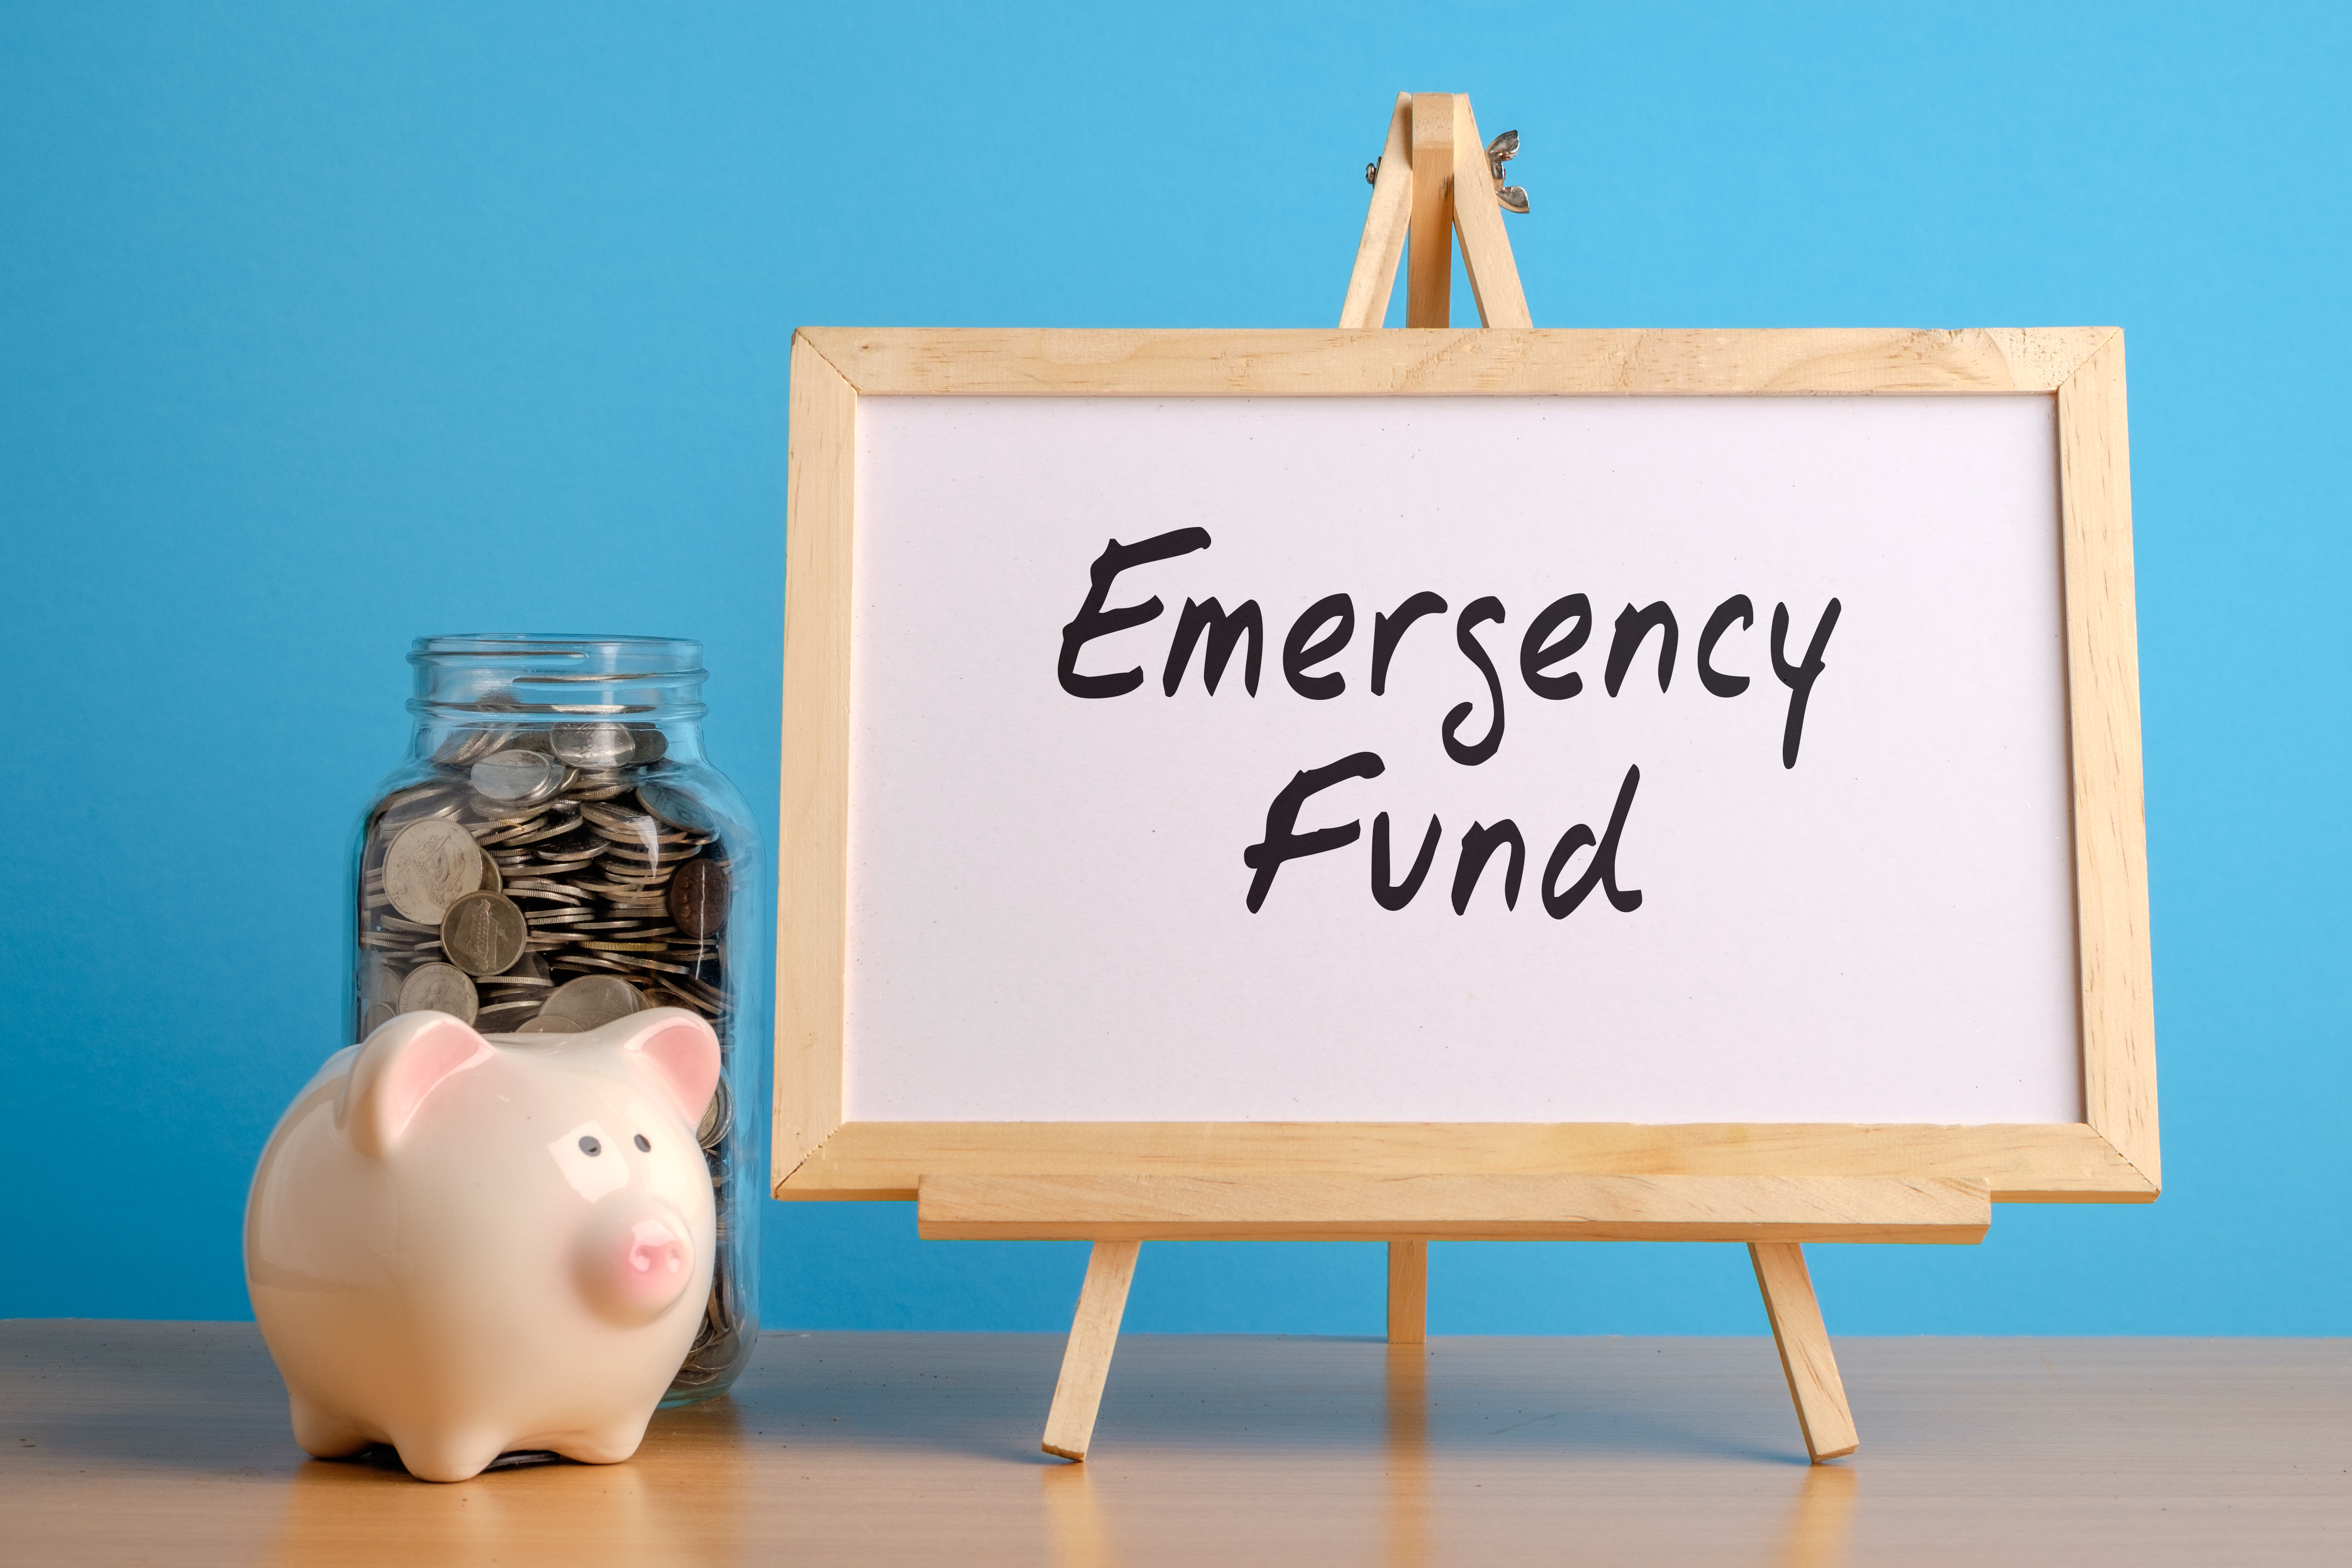 Dave Ramsey is asked by a couple whether they should adjust their emergency fund and retirement investing to accommodate having a bigger family.